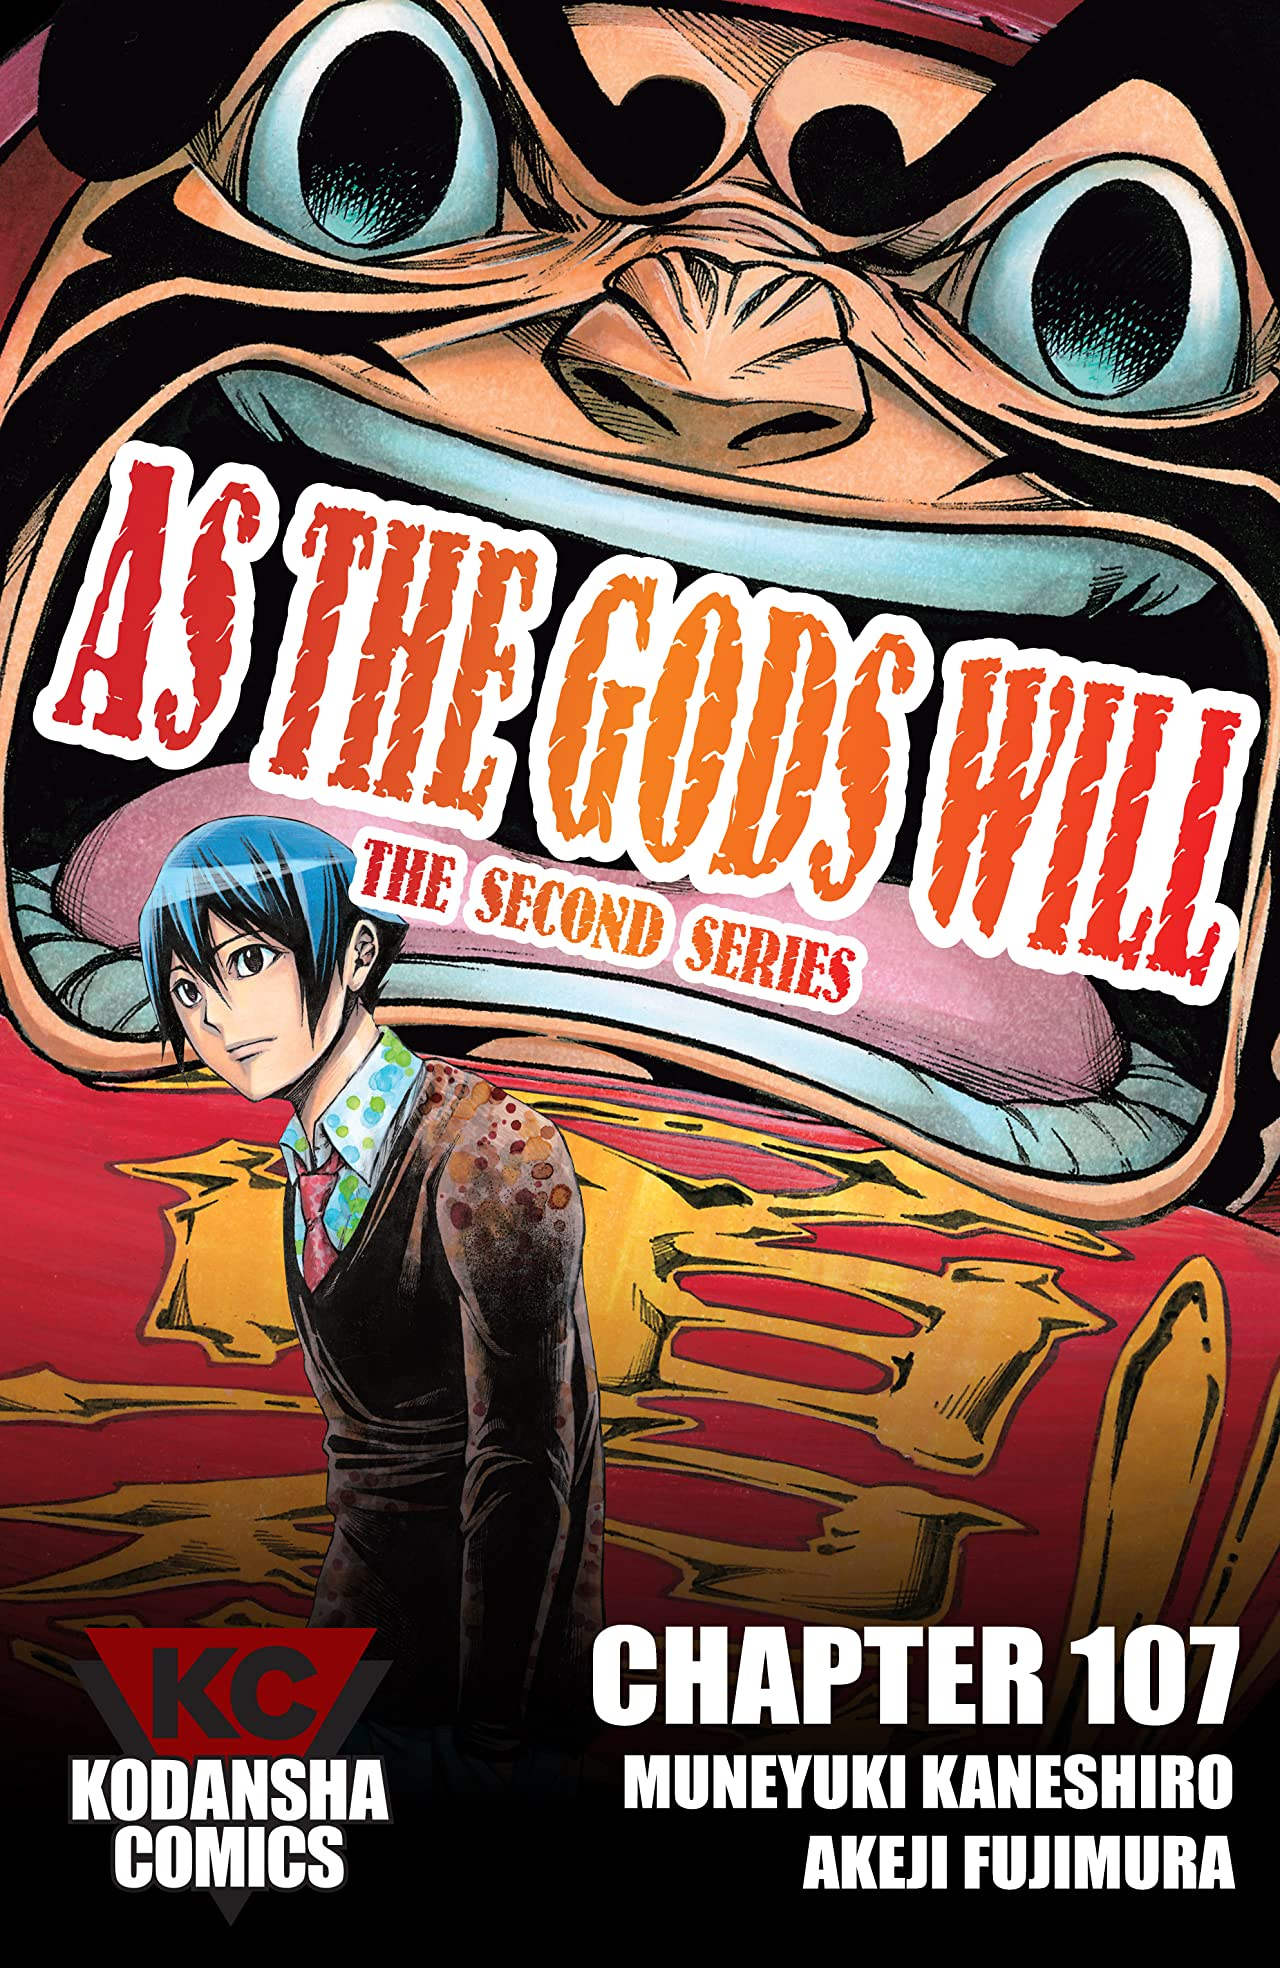 As The Gods Will: The Second Series #107